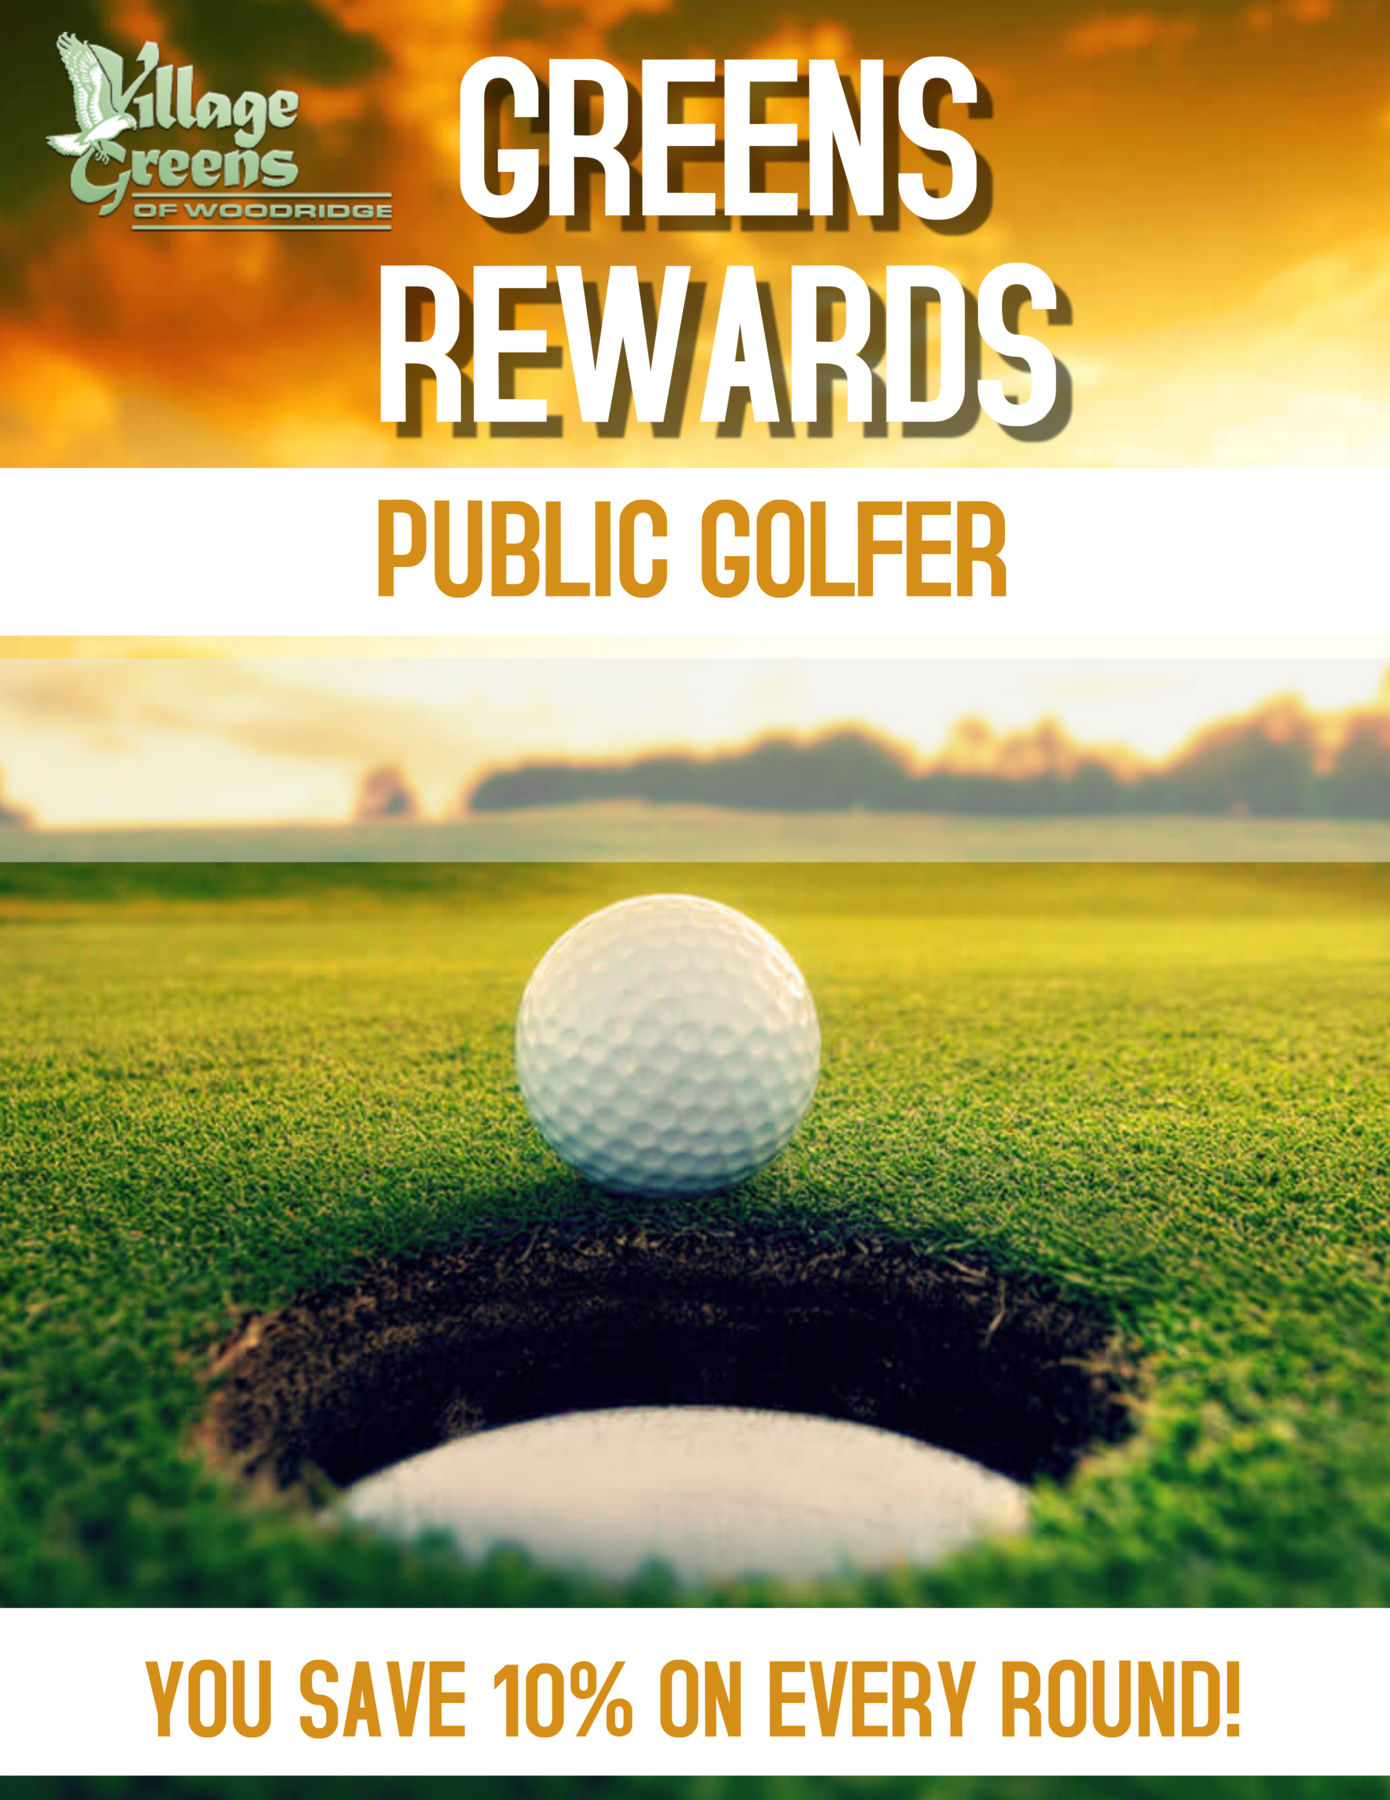 Greens Rewards Public